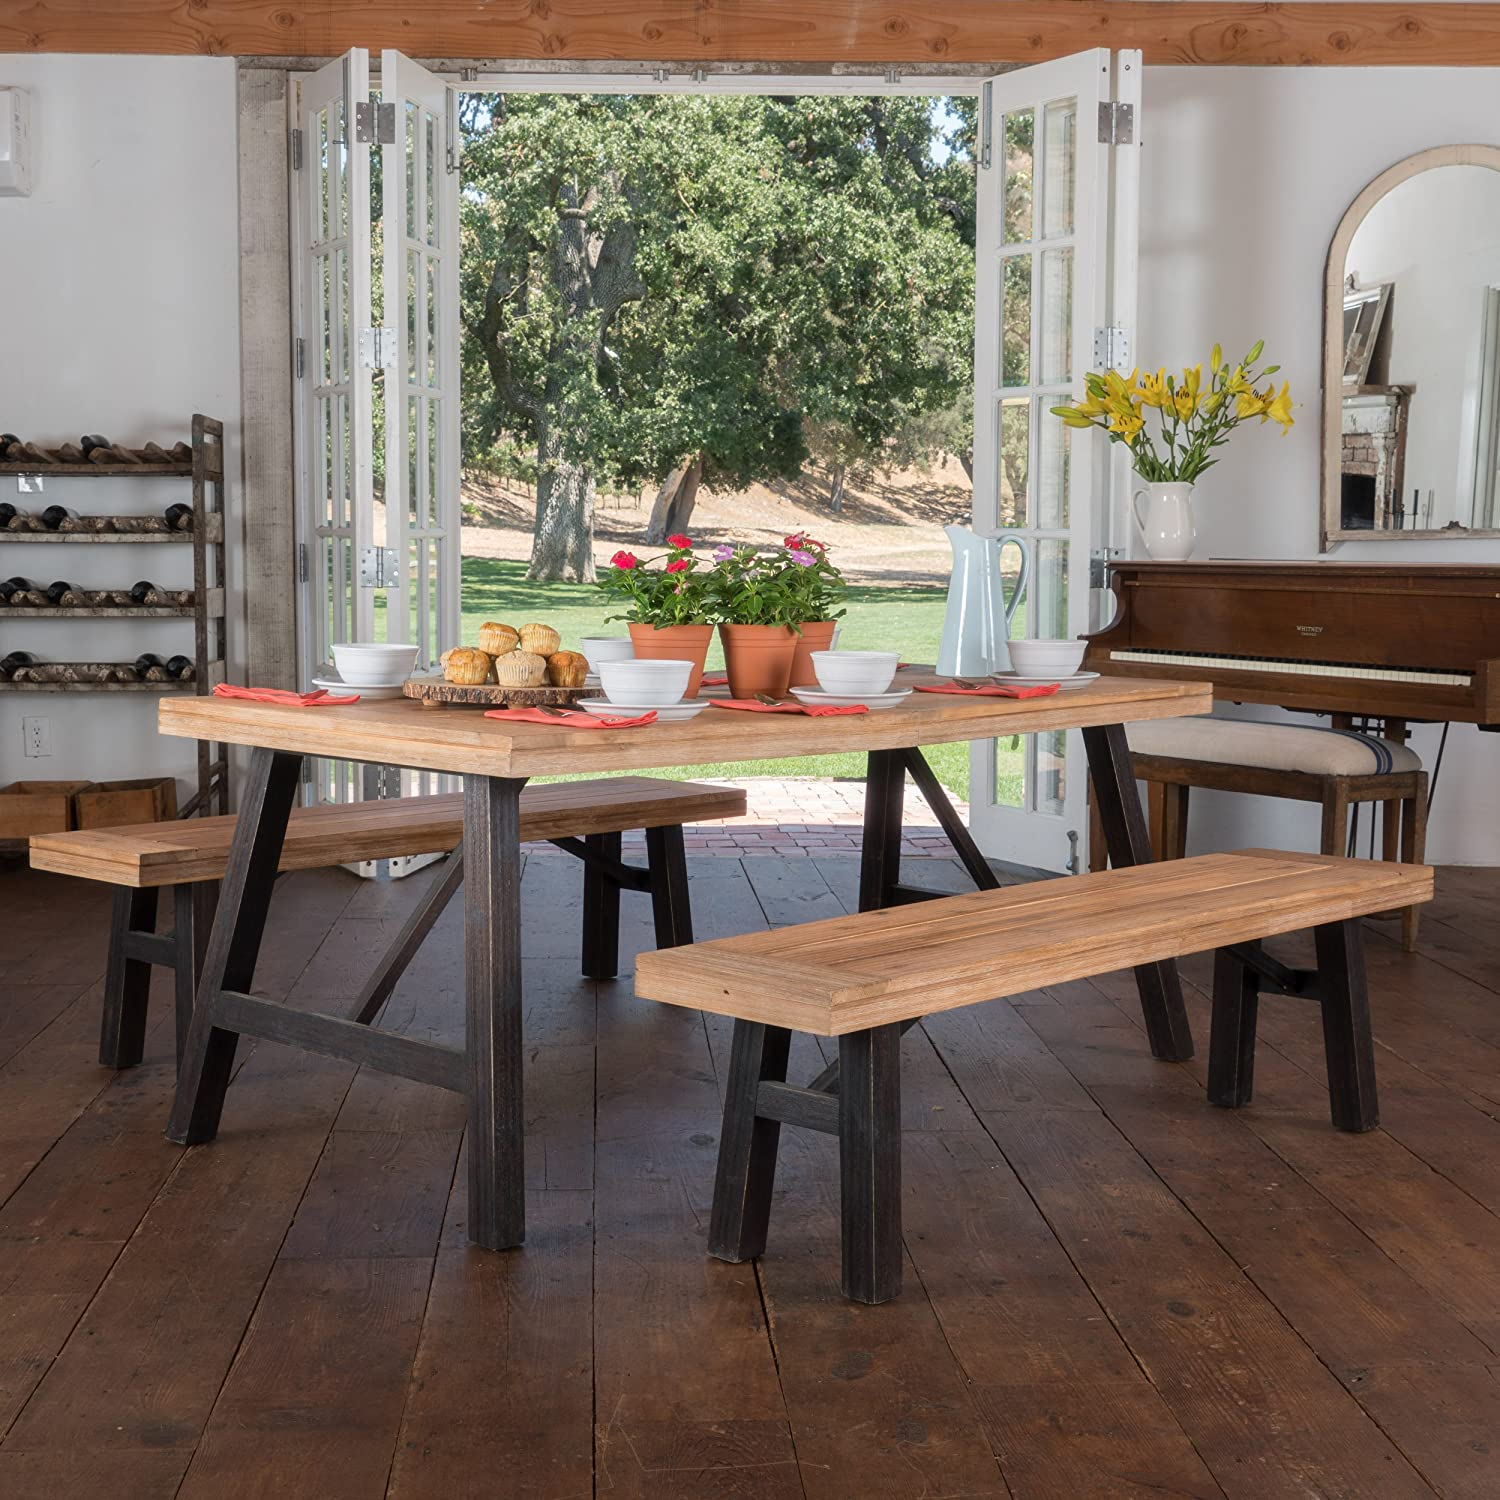 Christopher Knight Home Arlington Acacia Wood Dining Set in Brushed Grey, Color Natural Grain